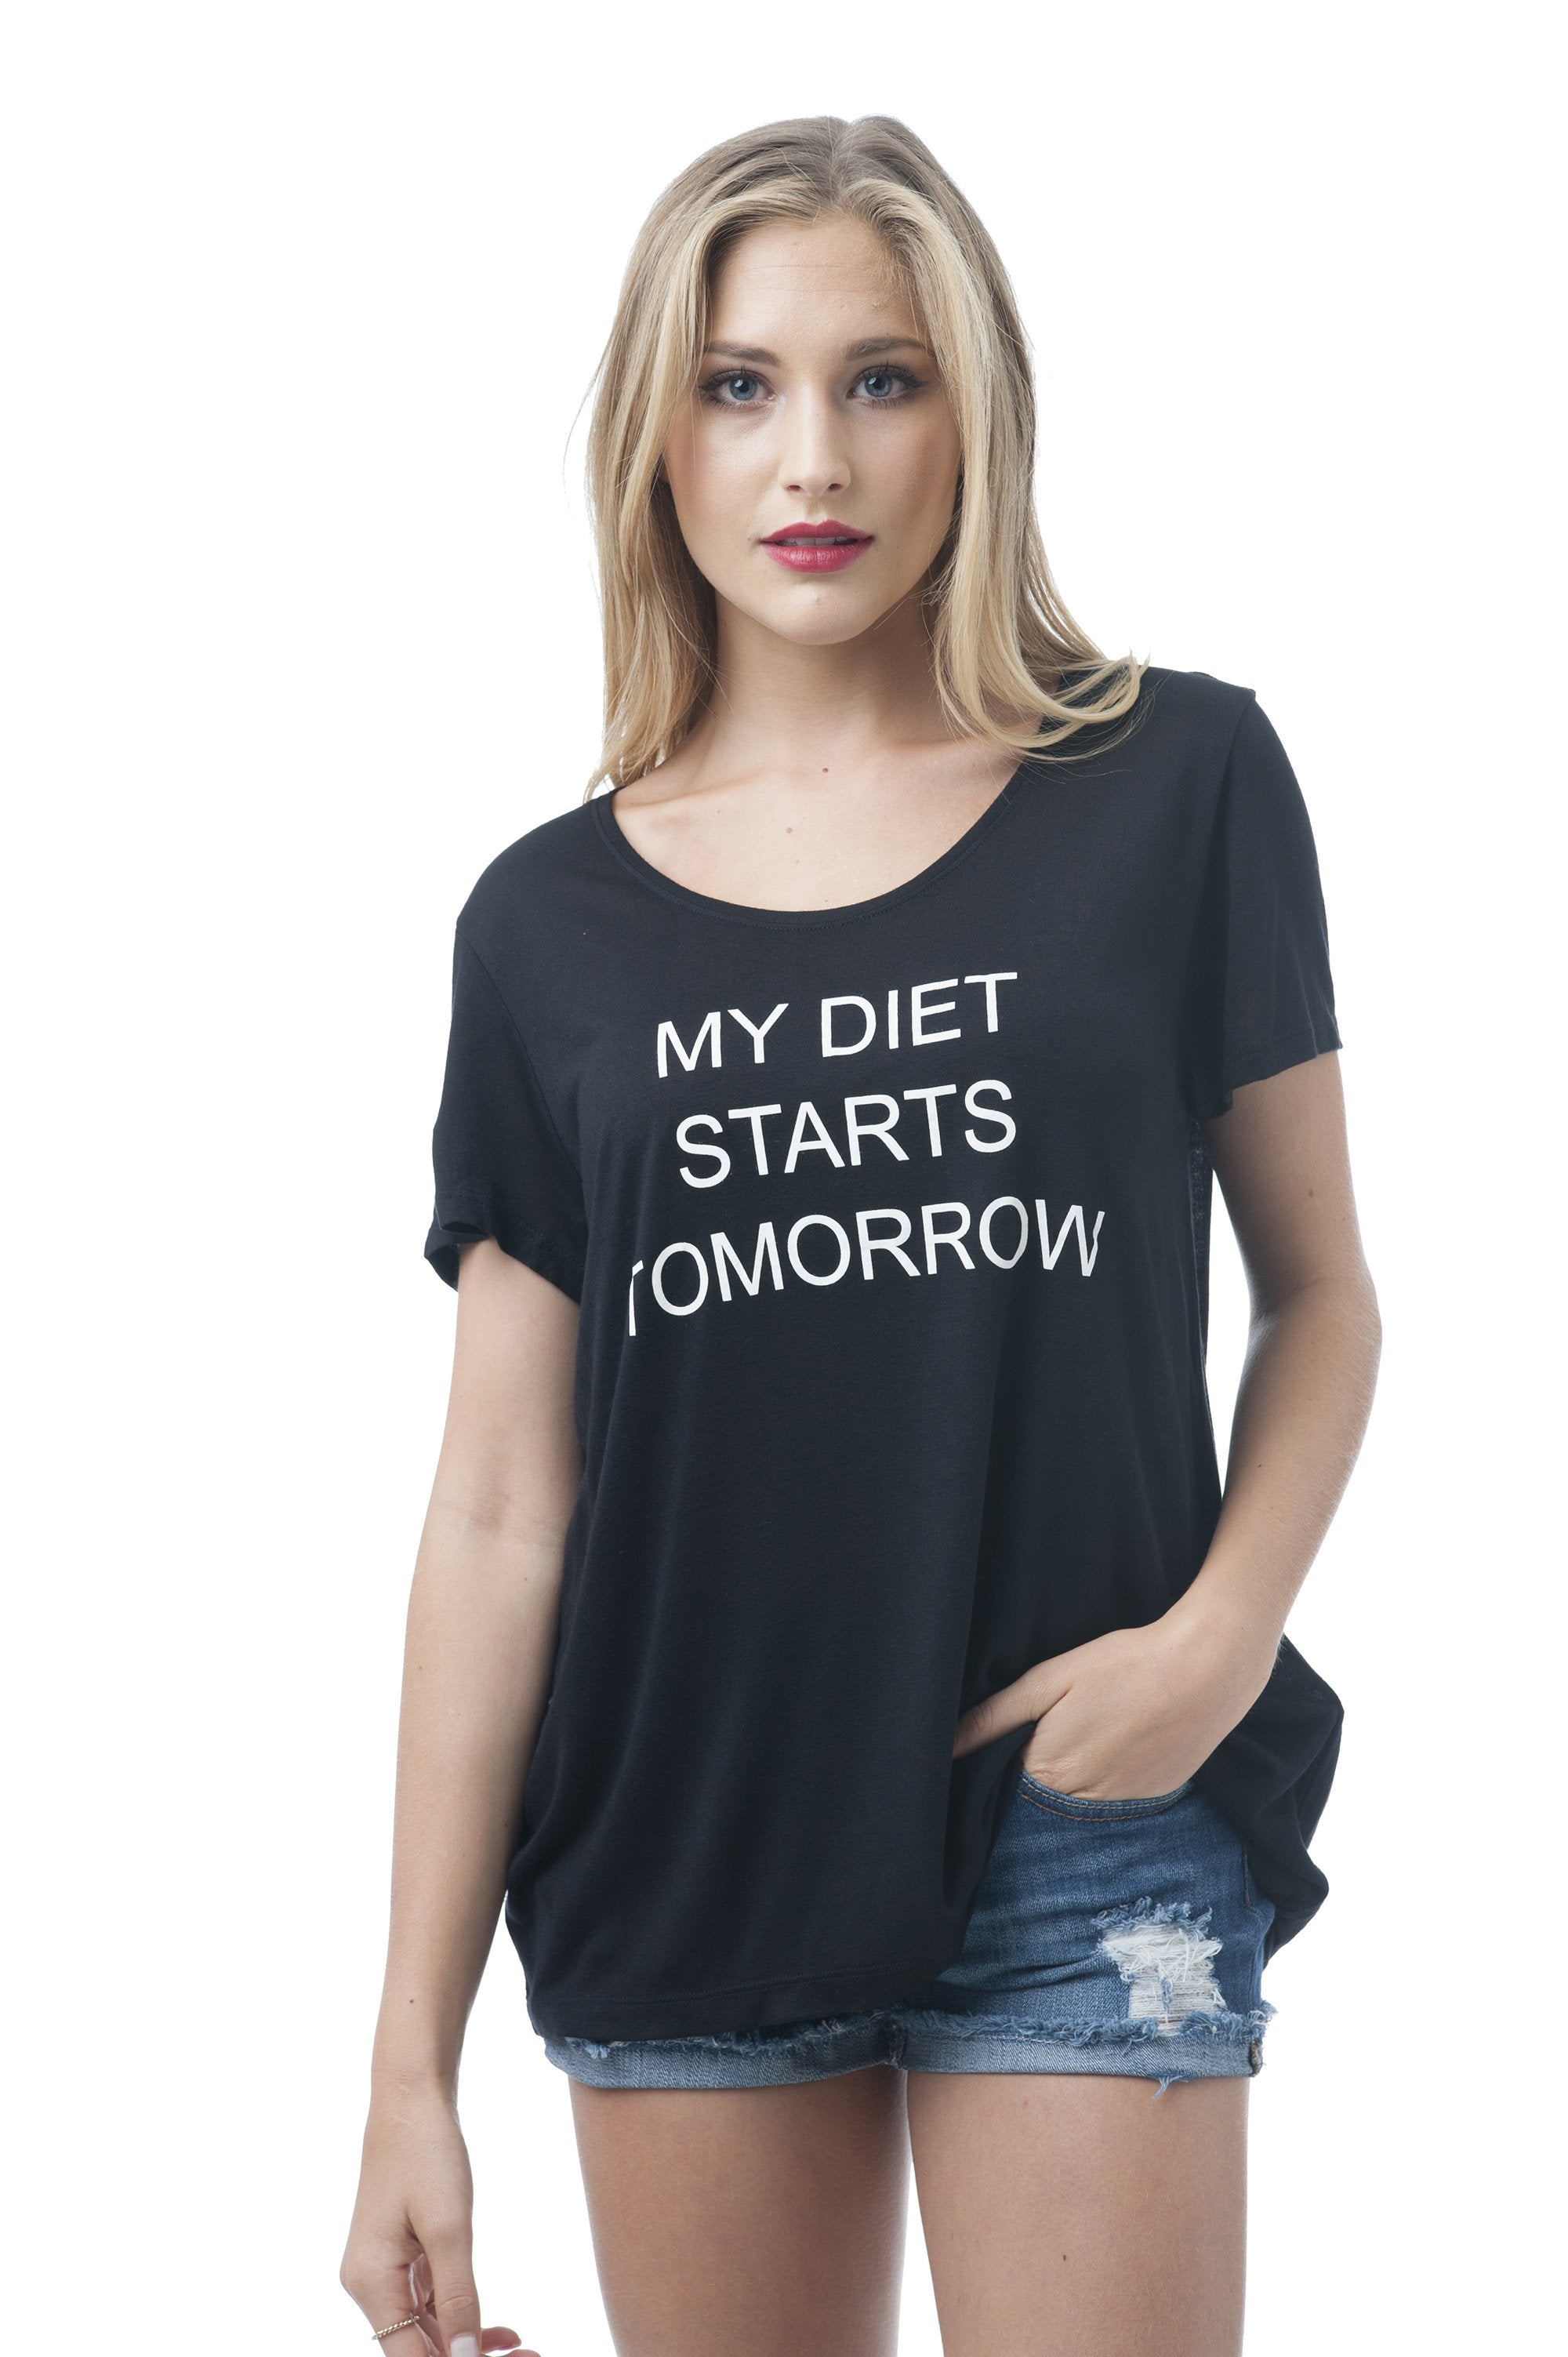 Khanomak Women's Sleeveless Shirt Tank Top Graphic Tee's My Diet Starts Tomorrow